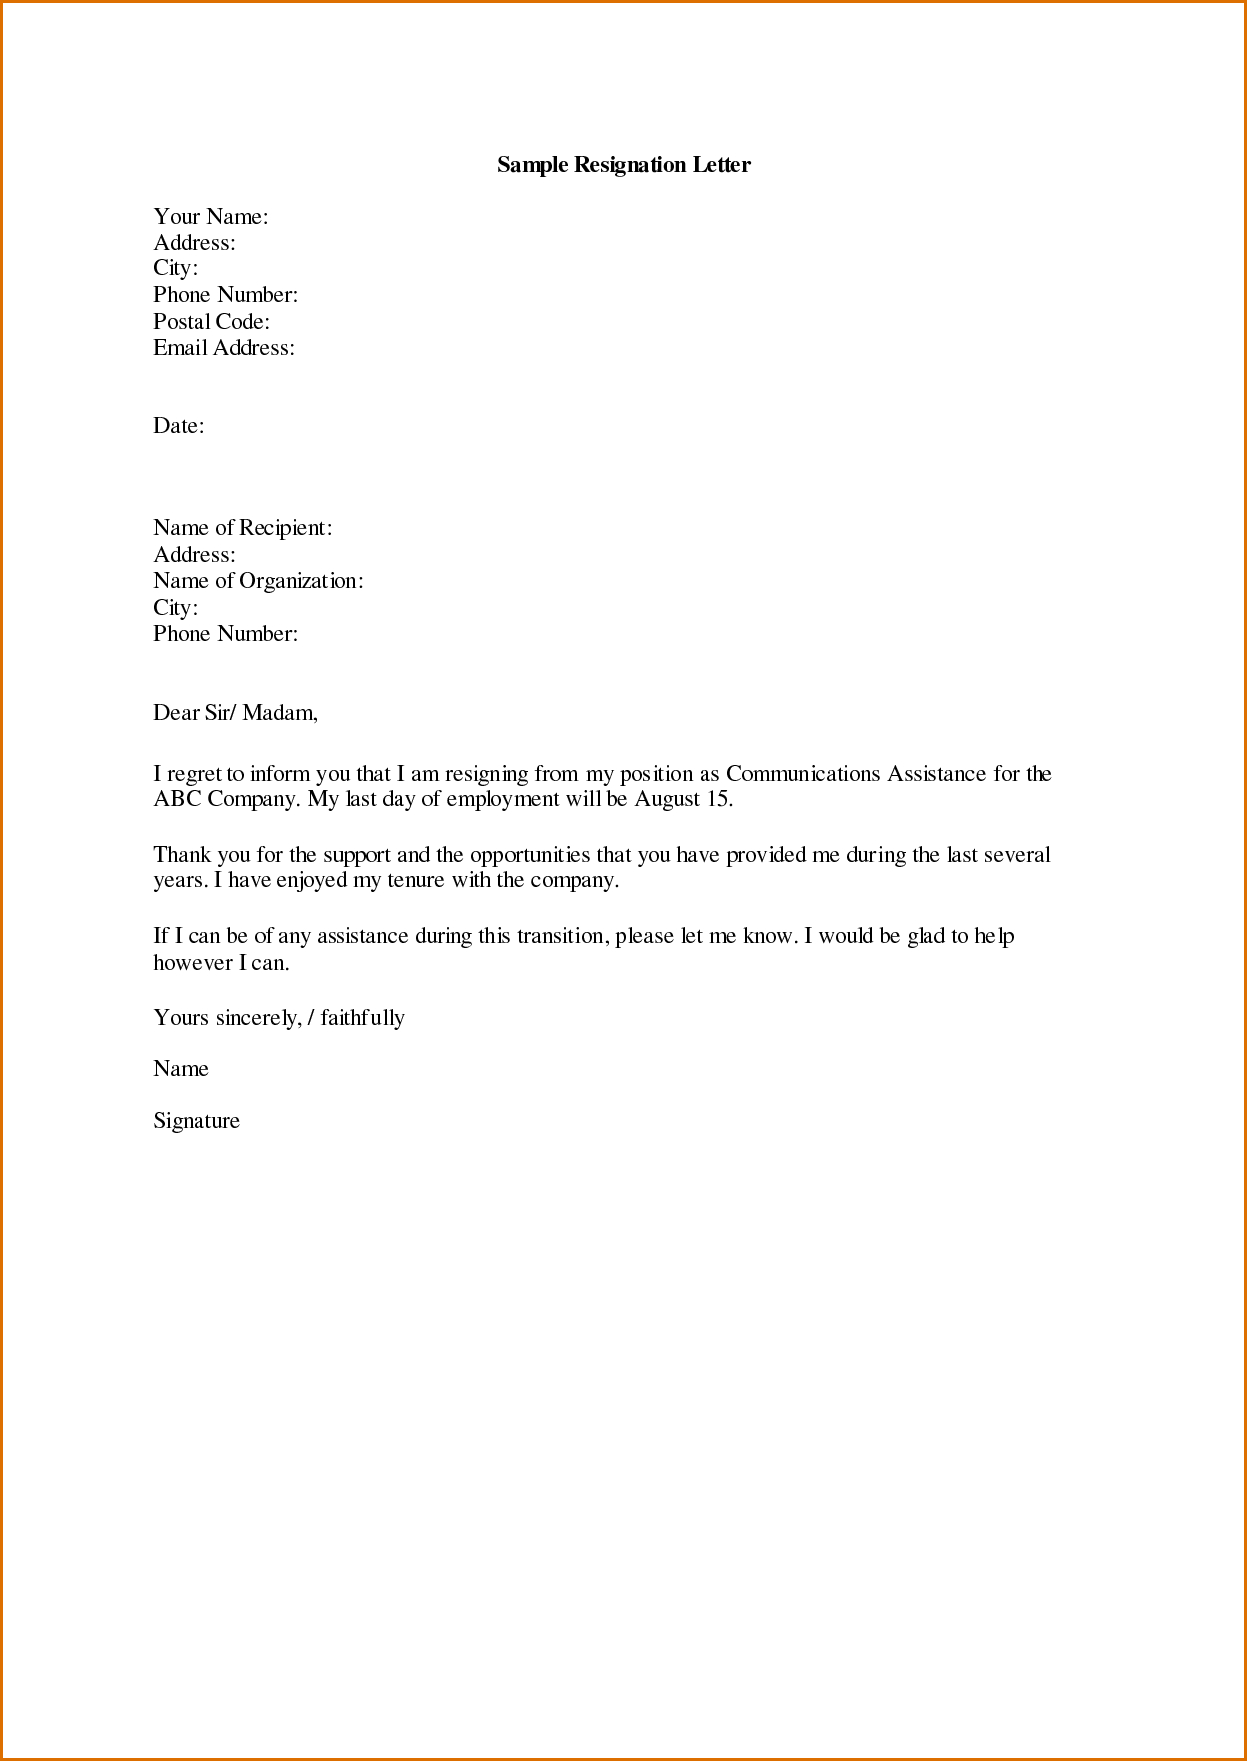 Resignation Letter Template - Awesome Letter Template Resignation